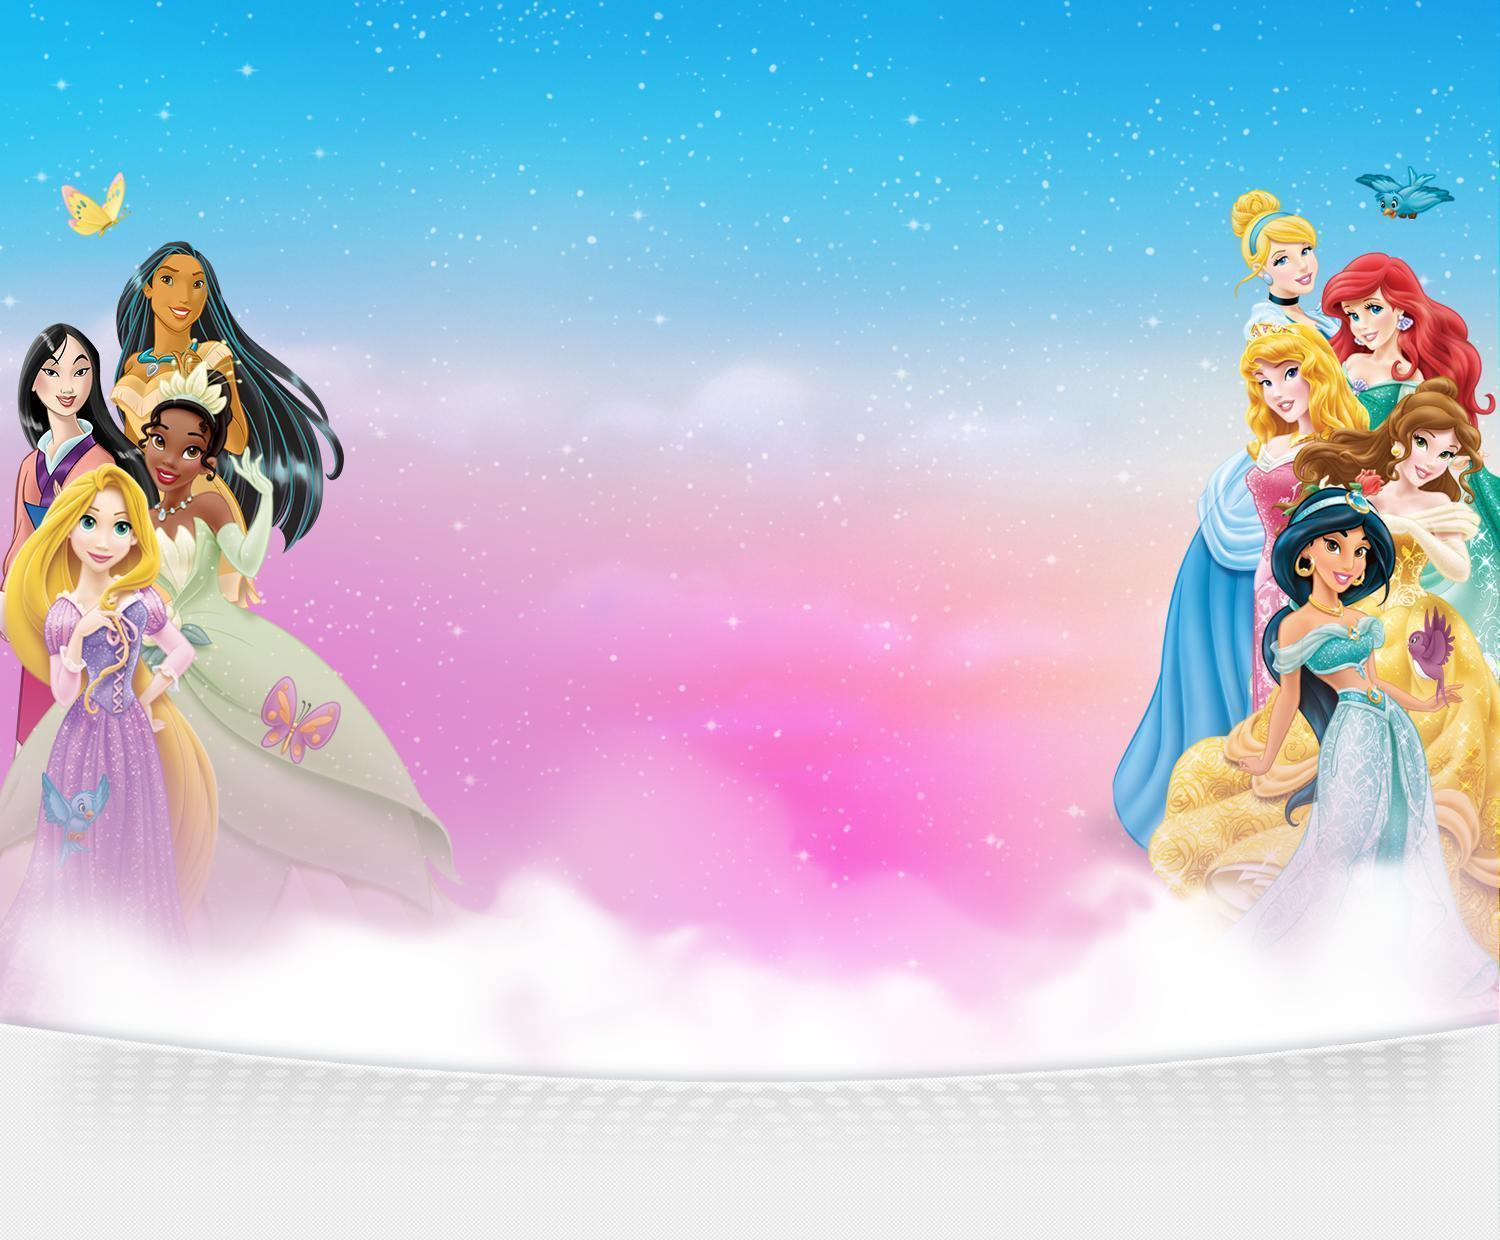 princesses hd wallpapers free - photo #6